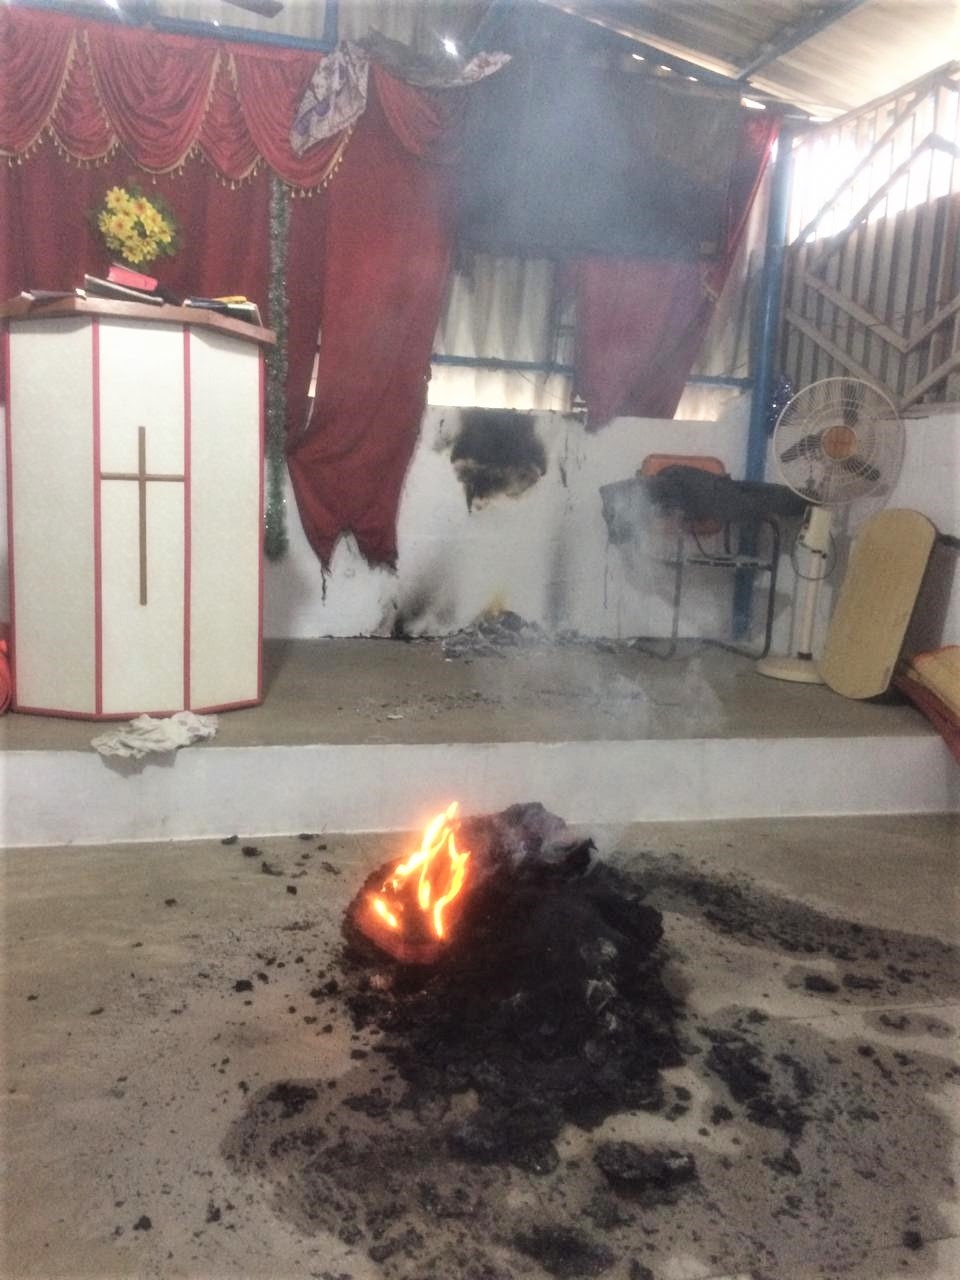 Hindu extremists are suspected in fire set inside building of church in Musiri village, Tamil Nadu. (Morning Star News)